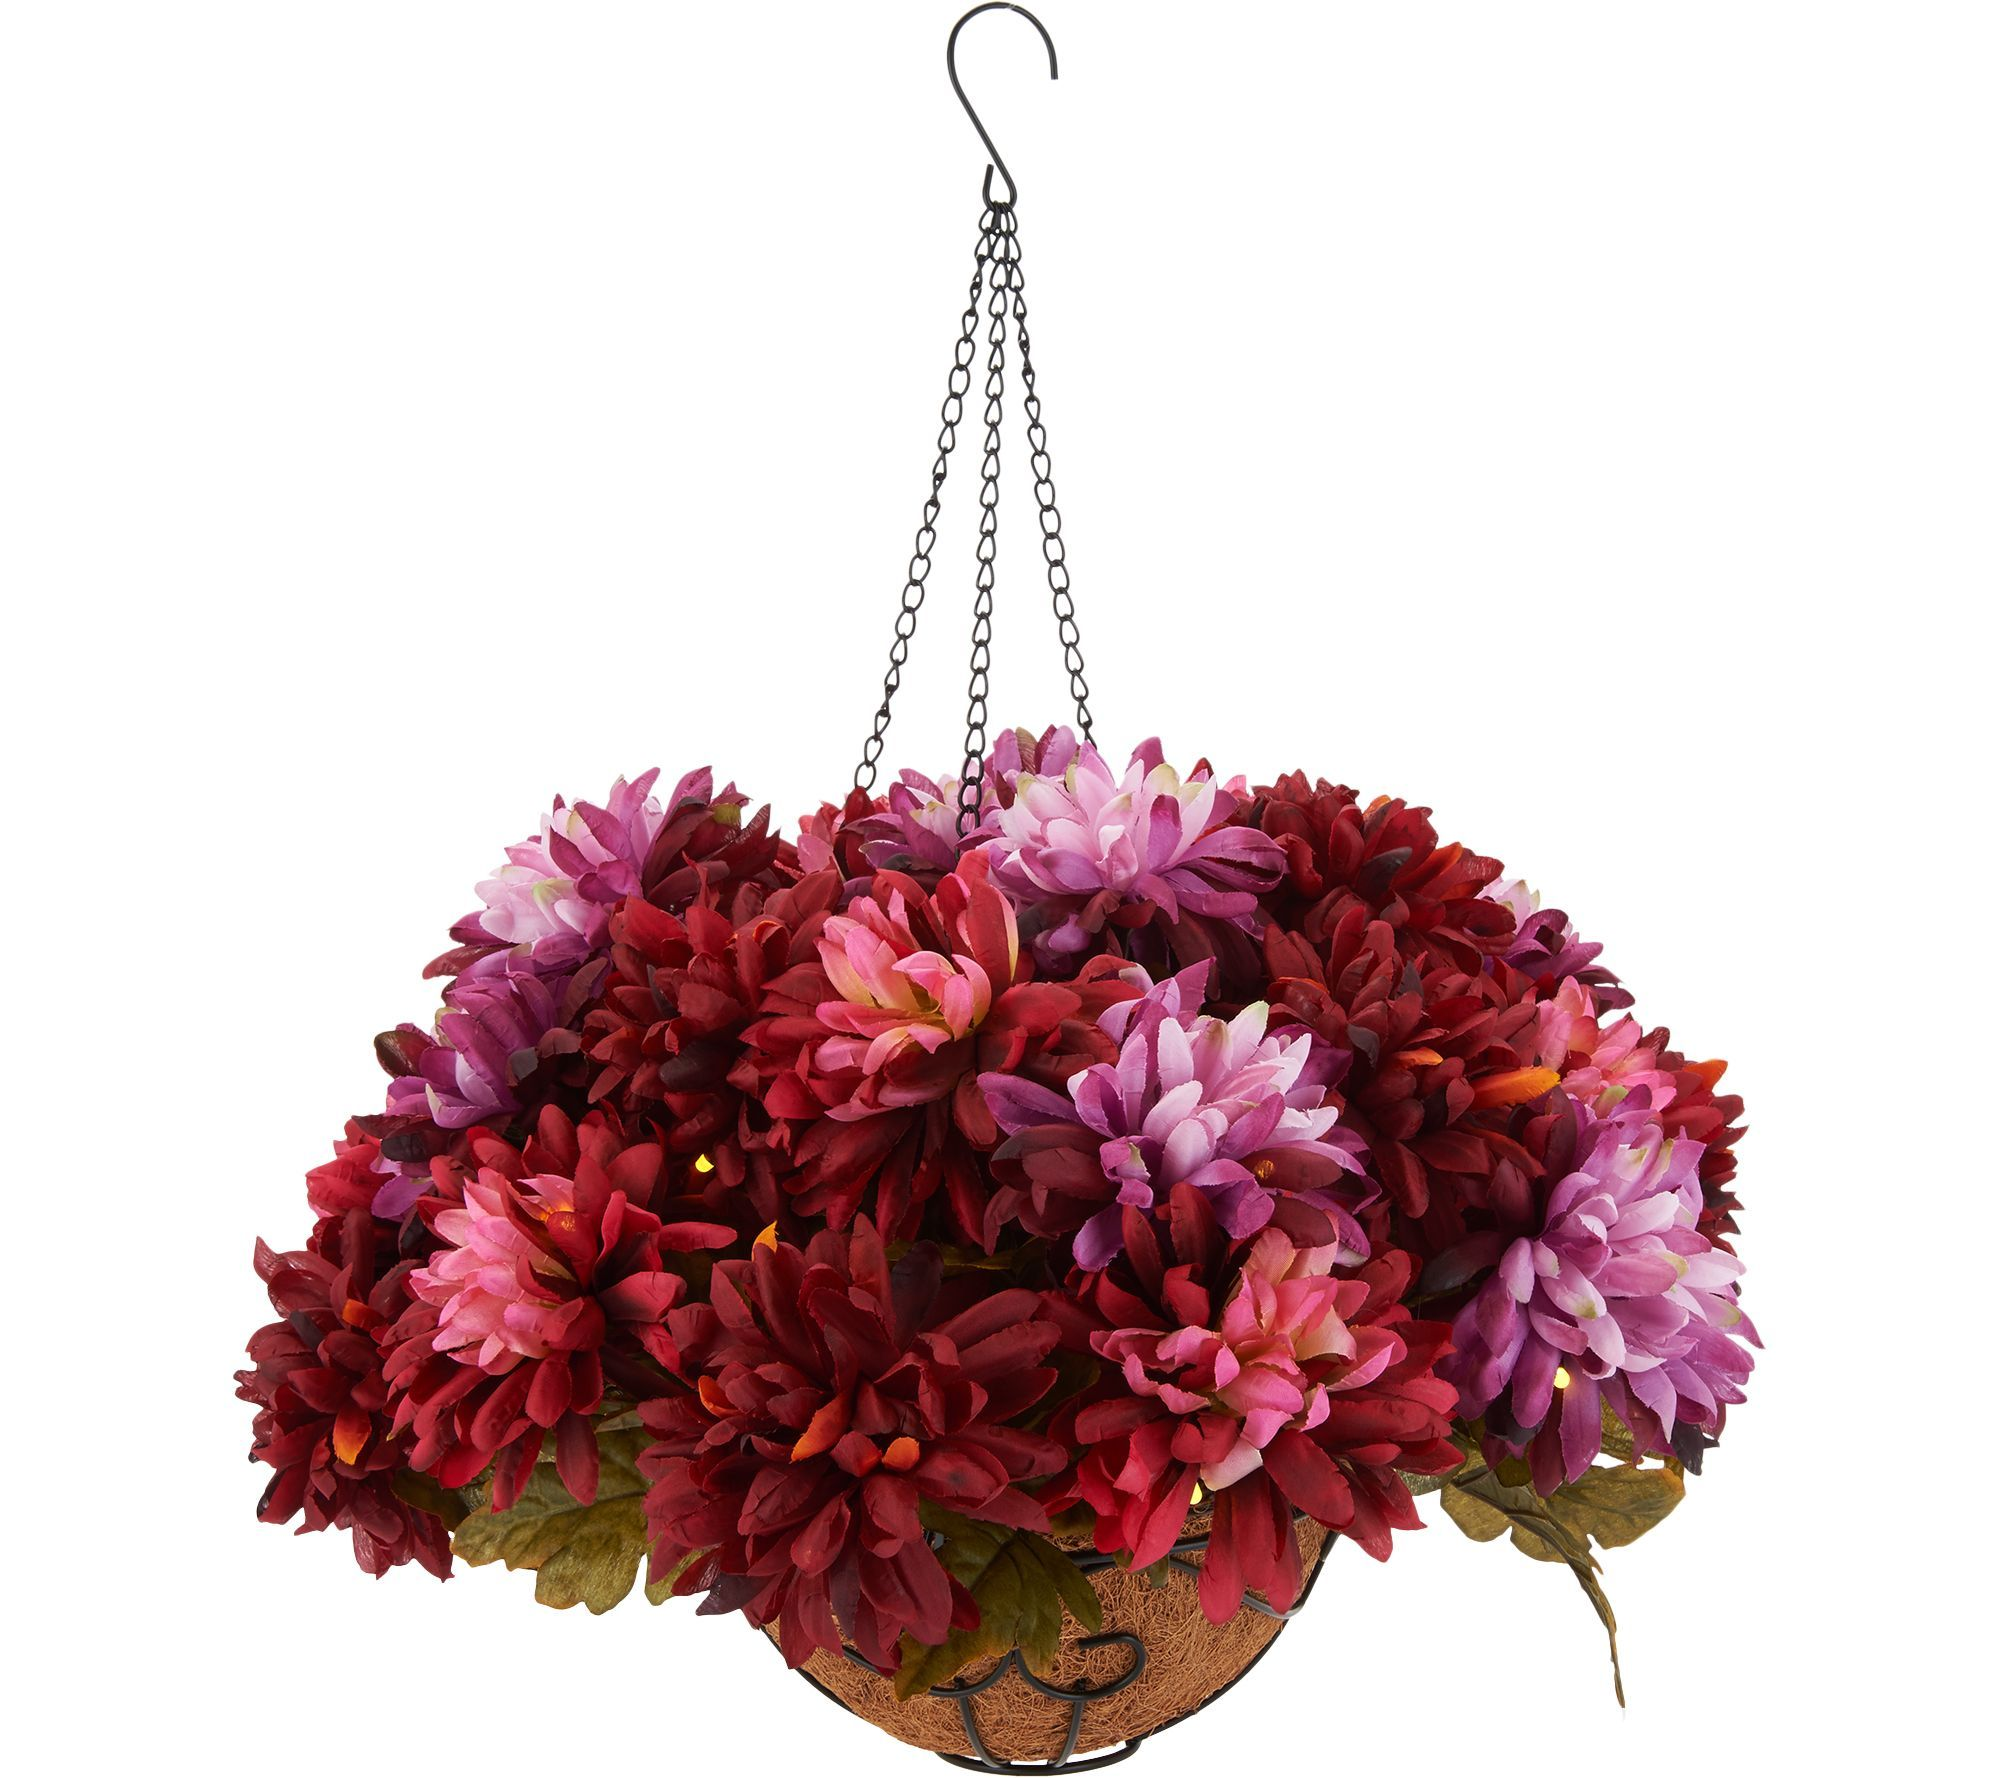 bethlehem lighting. H212703 Bethlehem Lights Prelit Harvest Mum Hanging Basket With Timer Lighting 6